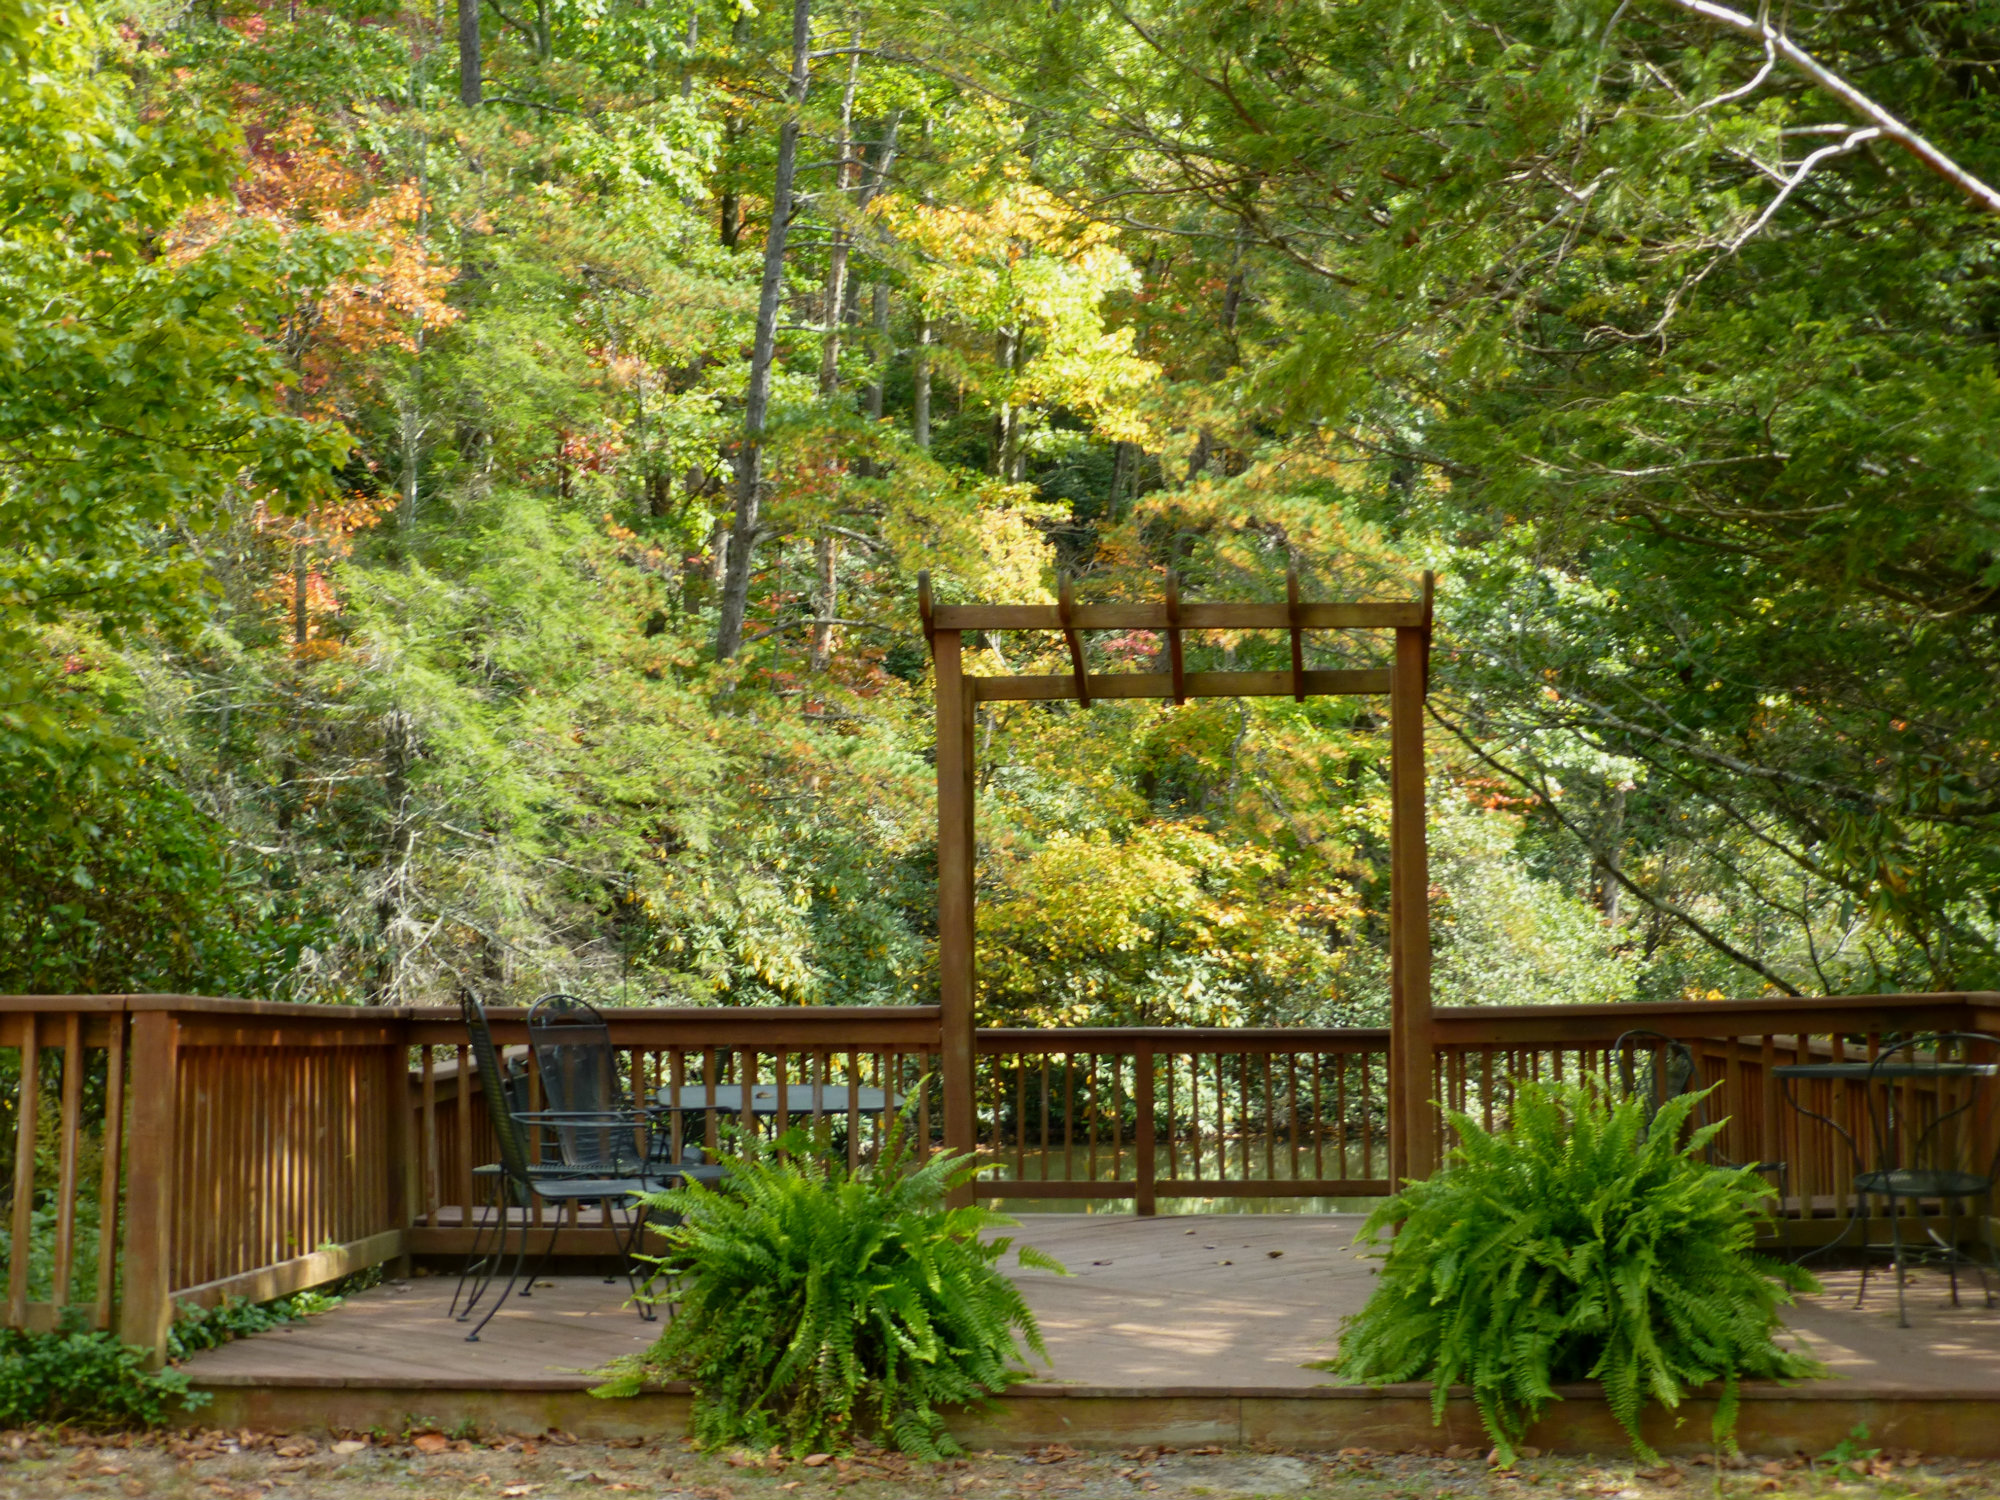 Deck with a square archway and railing with a backdrop of trees